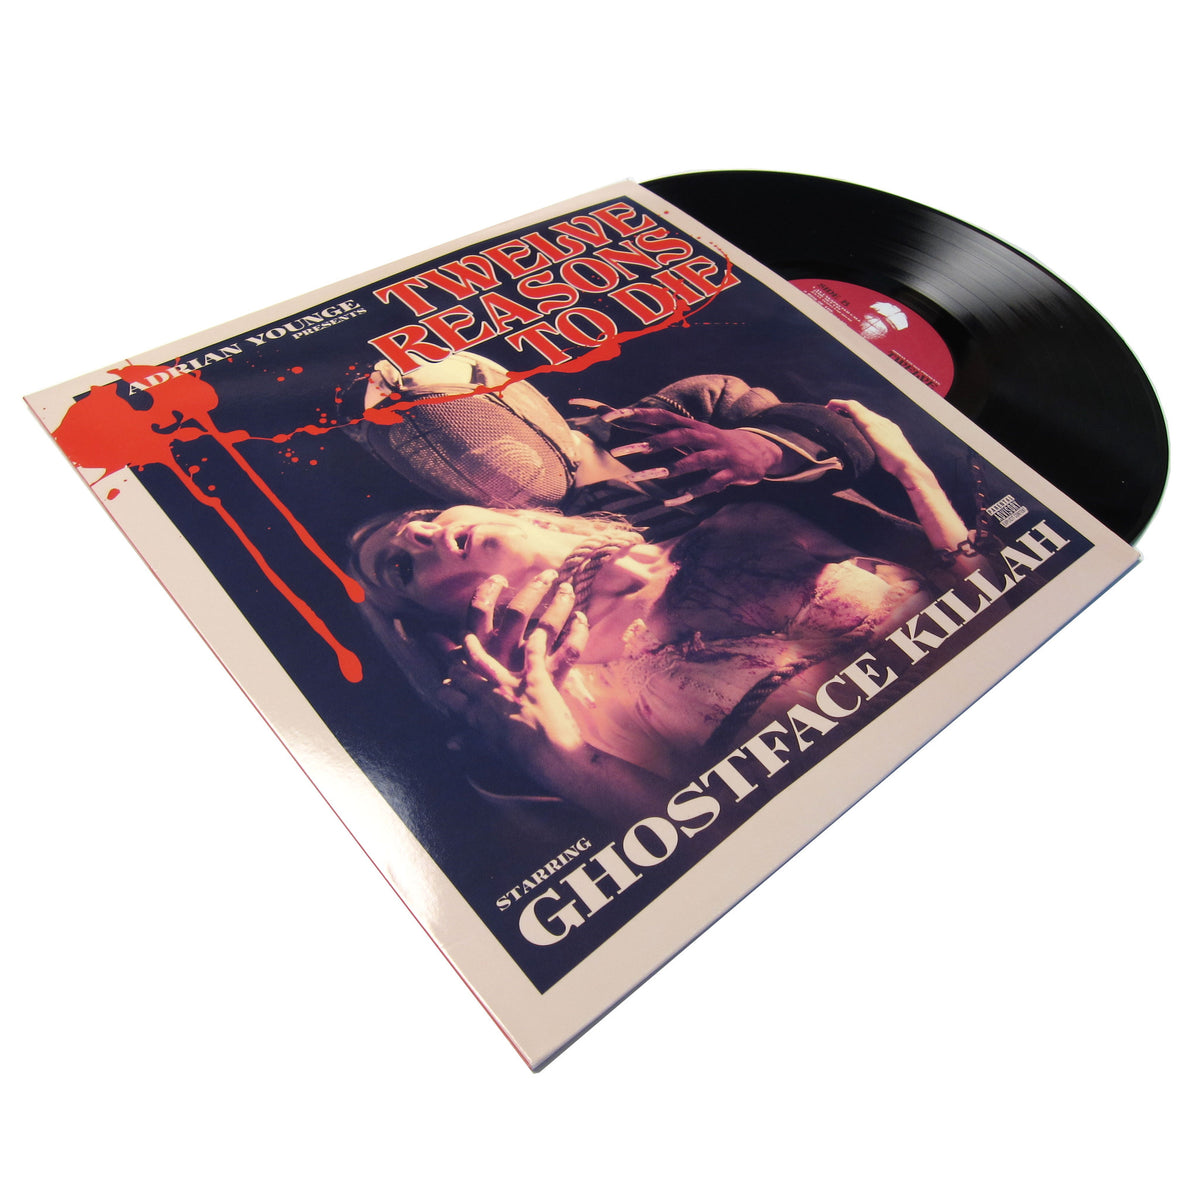 Ghostface Killah: 12 Reasons To Die (Adrian Younge) LP